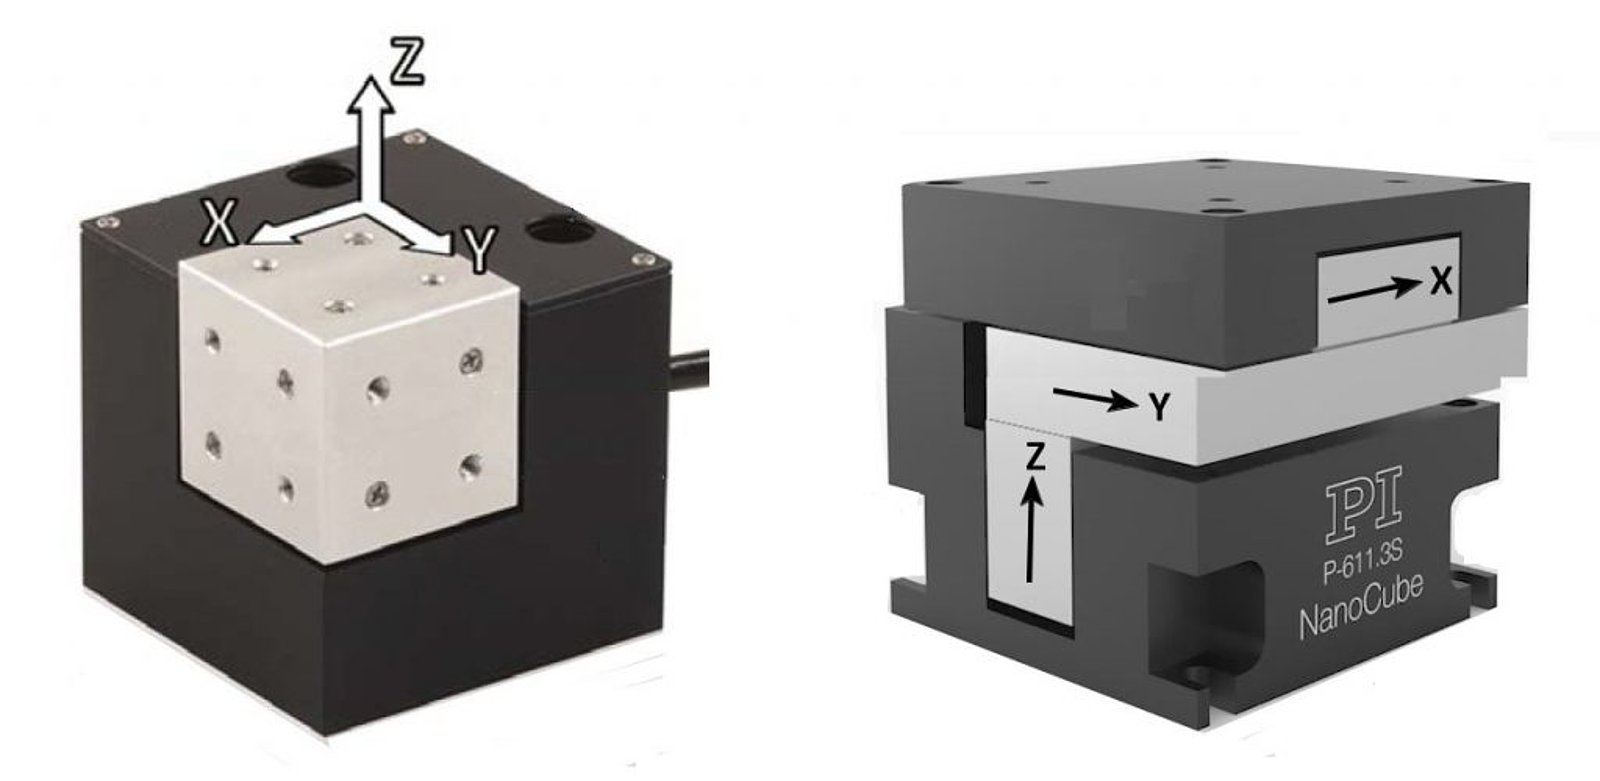 All Piezo Motors Are Not Created Equal The Piezoelectric Effect For Consumption And Improve Performance Of Ultrasonic Two Different Designs Nanocube Xyz Stage Left Paralle Kinematics Design With One Common Moving Platform Provides Faster Response